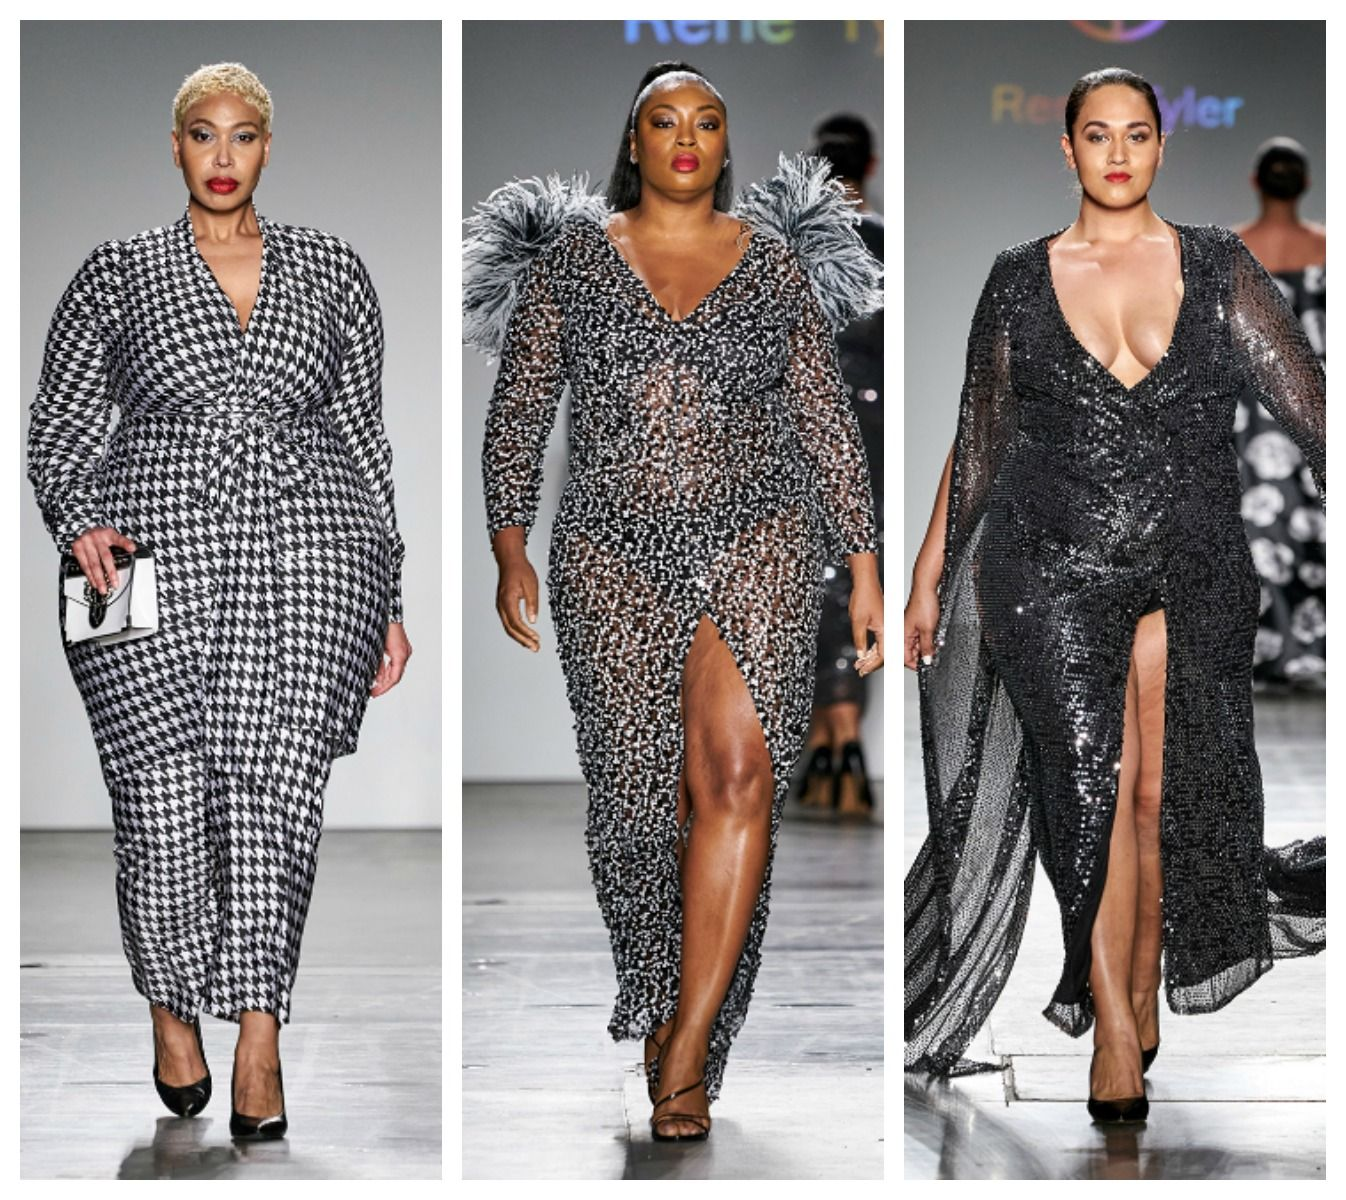 Plus Size Designer Rene Tyler Stole The Show At New York Fashion Week In 2020 Fashion Plus Size Fashion Plus Size Designers